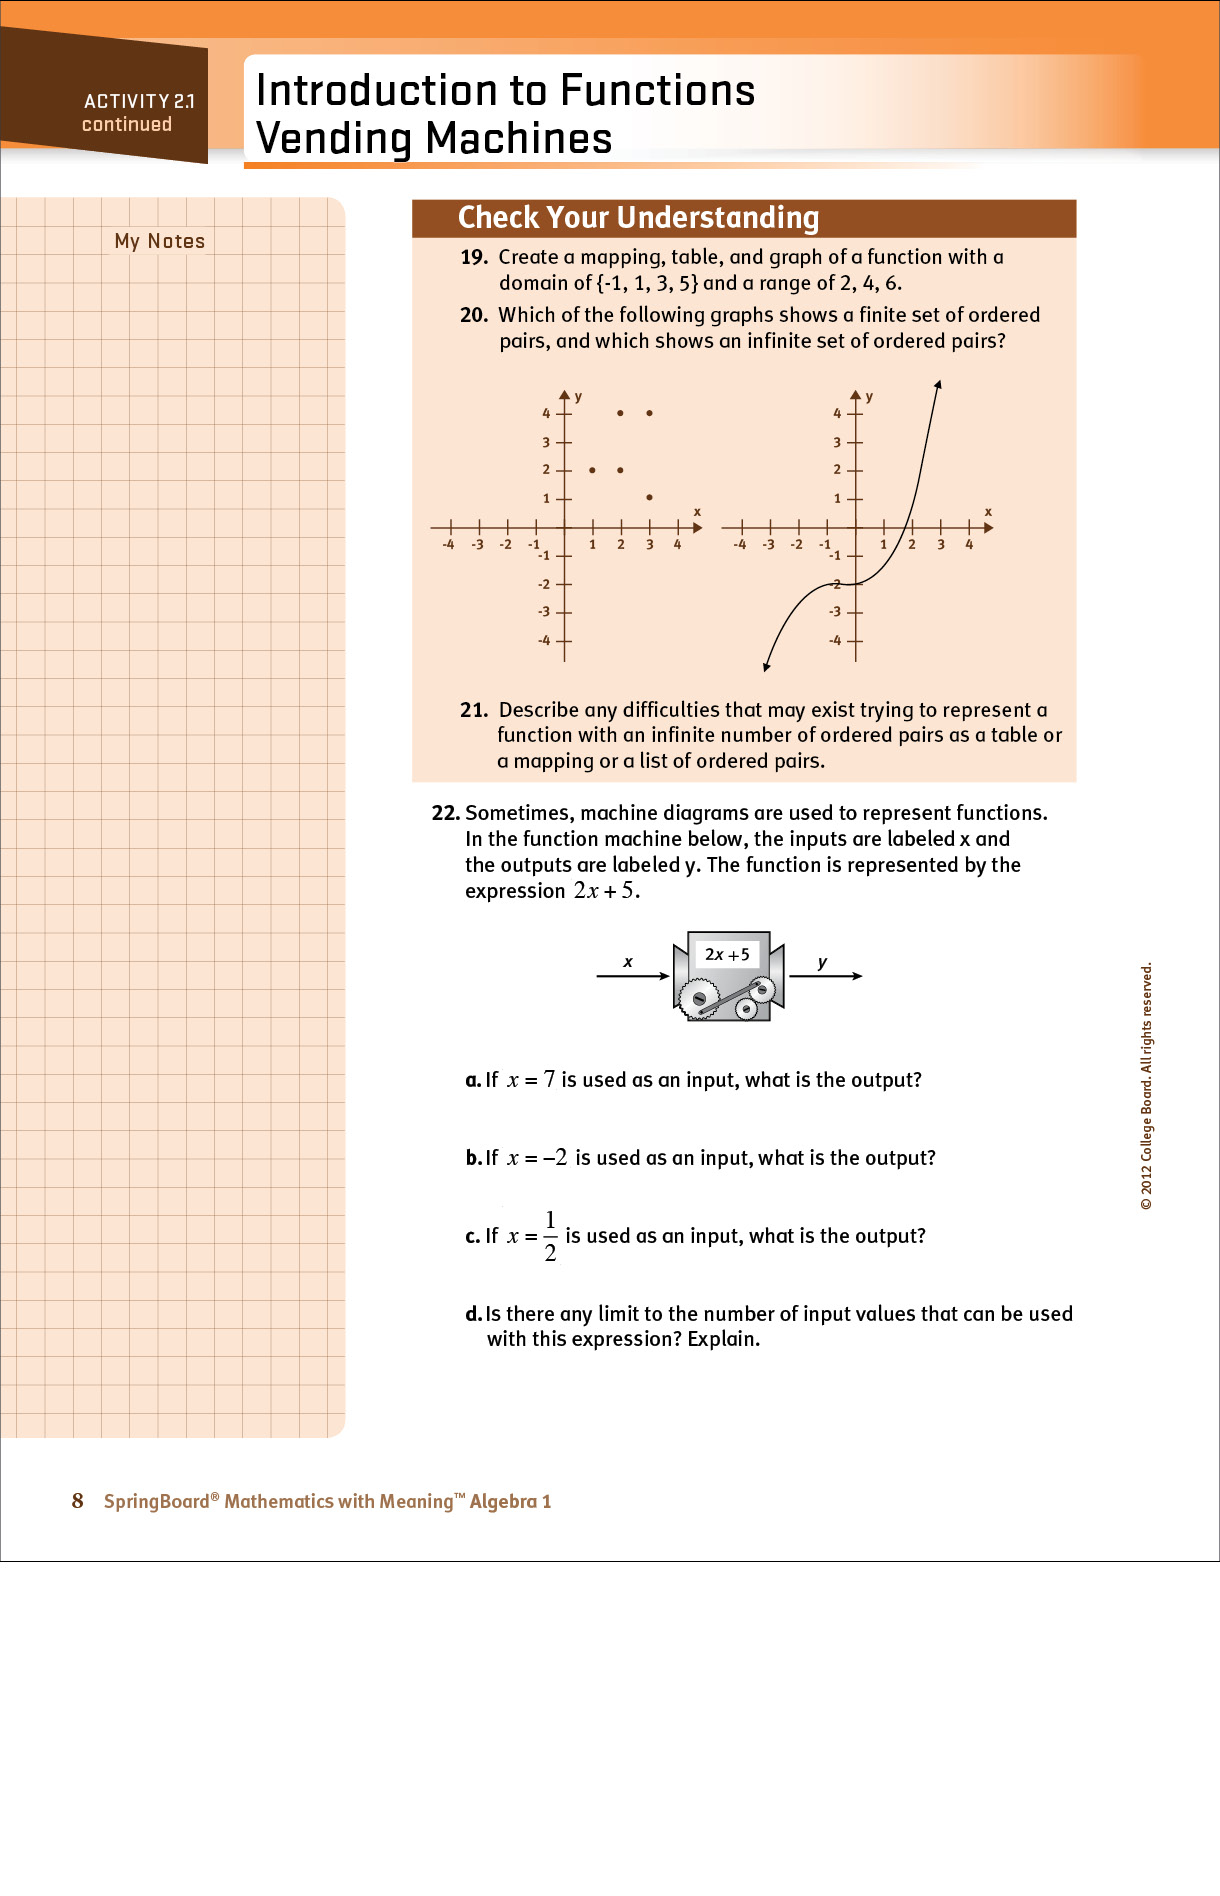 High school student alegbra page about inputs and outputs of functions